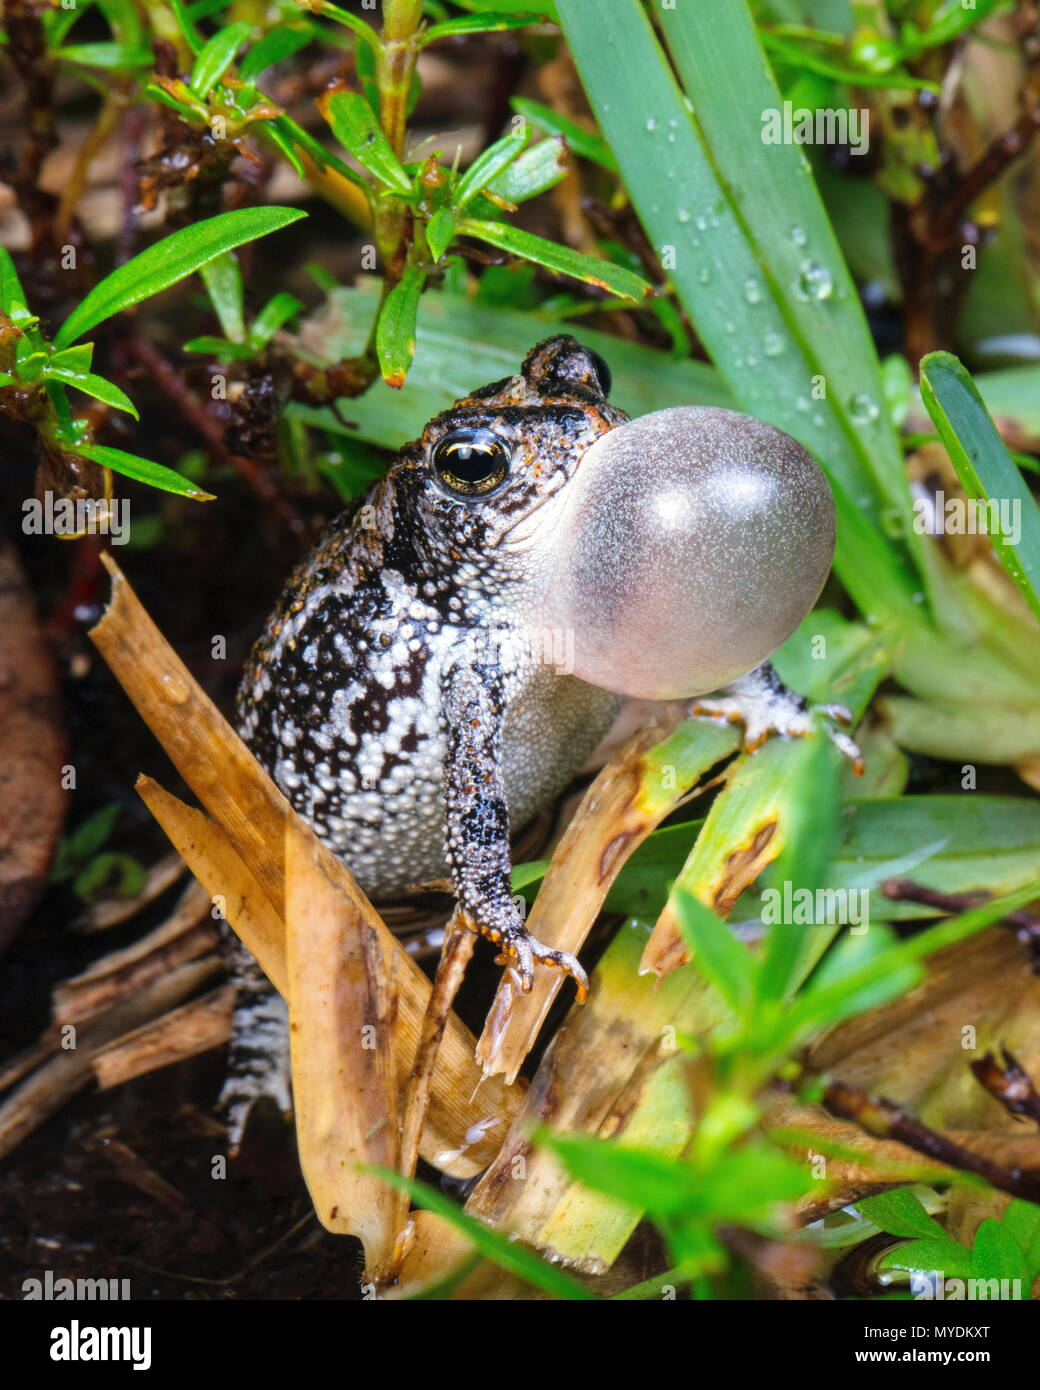 A tiny oak toad, Anaxyrus quercicus, calls for a mate with its vocal sac inflated. - Stock Image